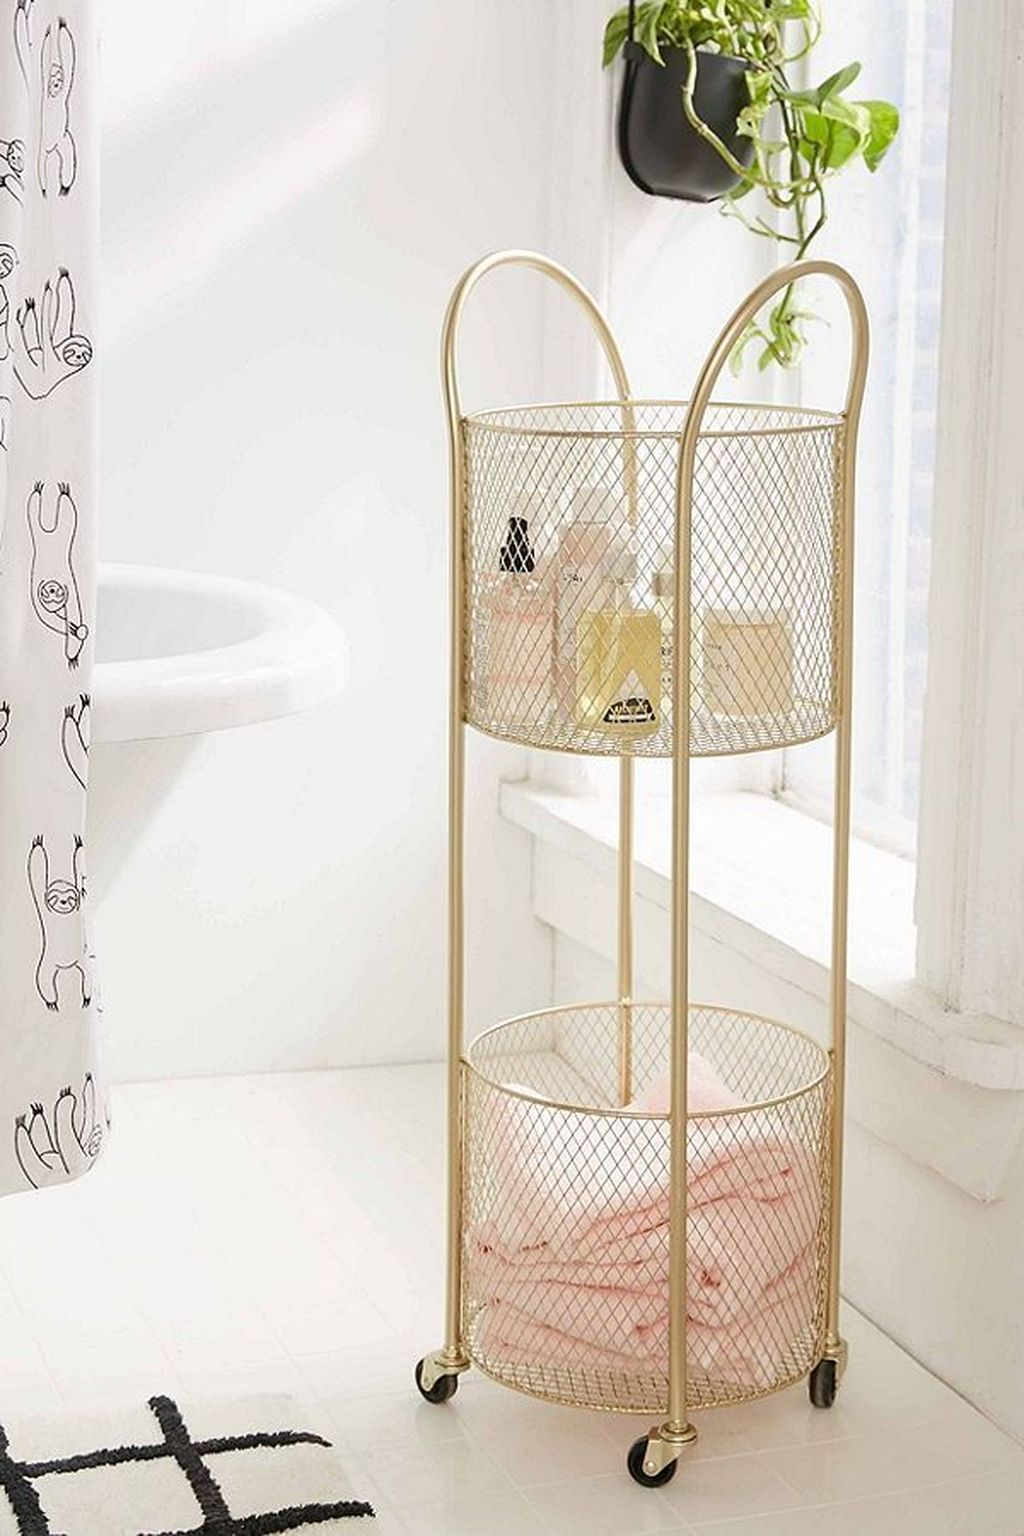 Amazing Bathroom Storage Design Ideas For Small Space 25